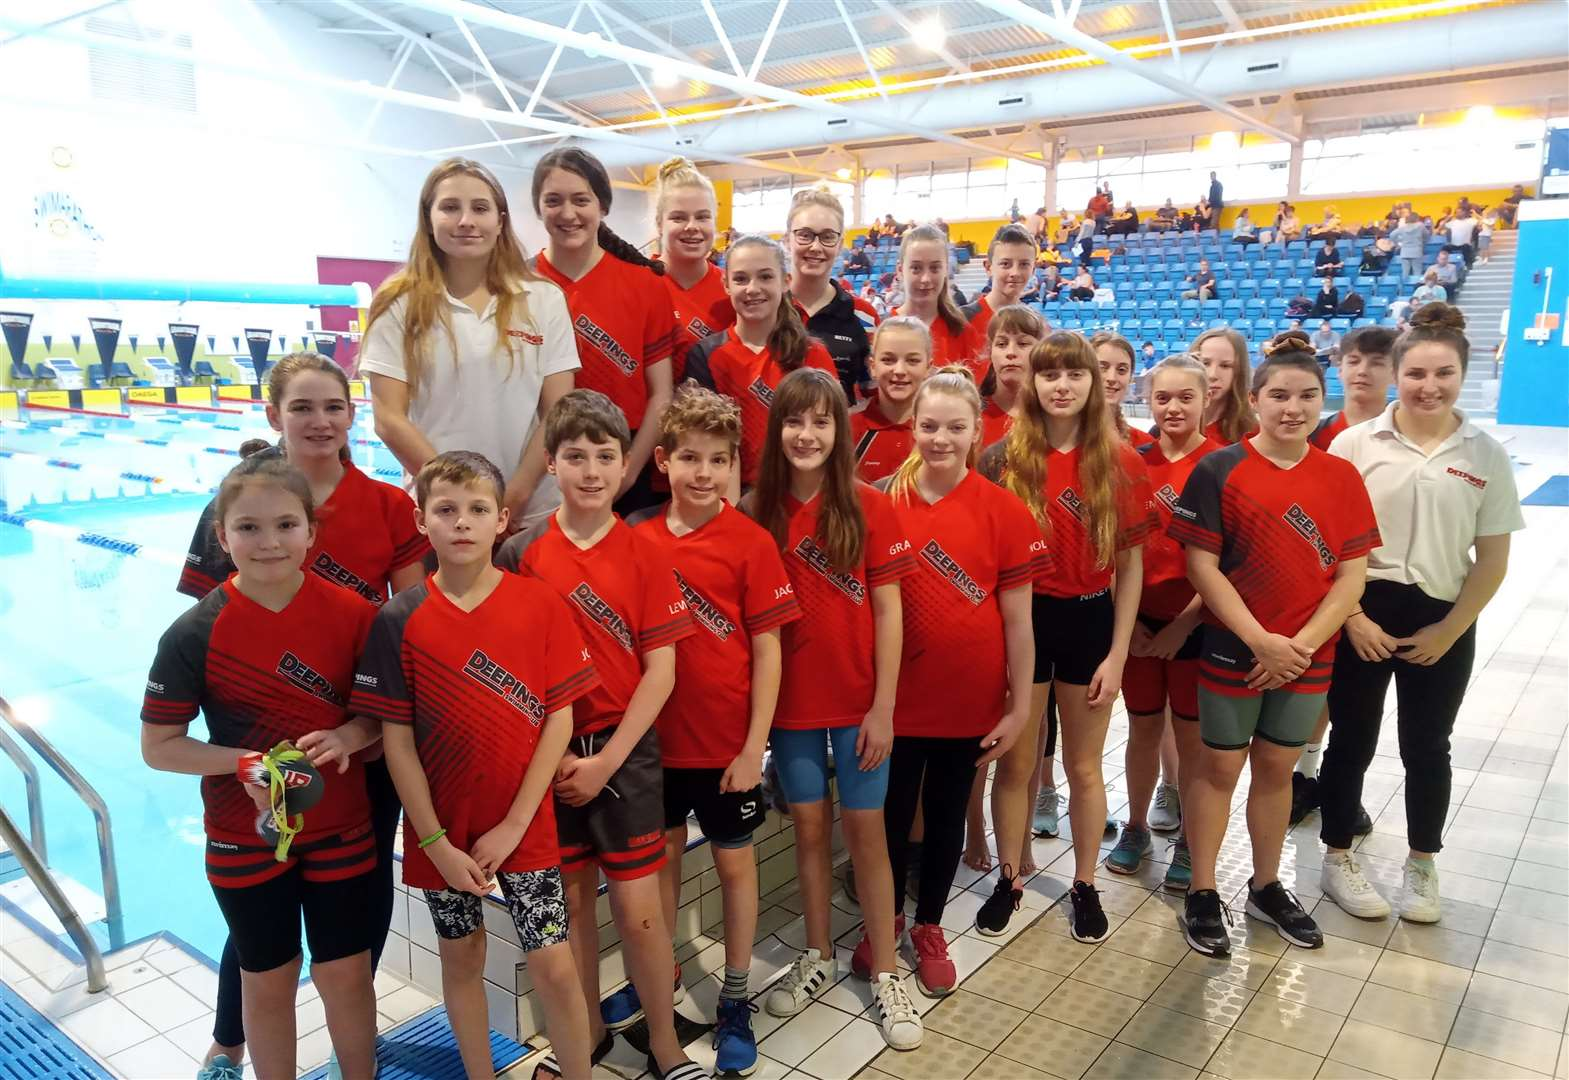 Lorna leads the way in record-breaking feats for Deepings swimmers